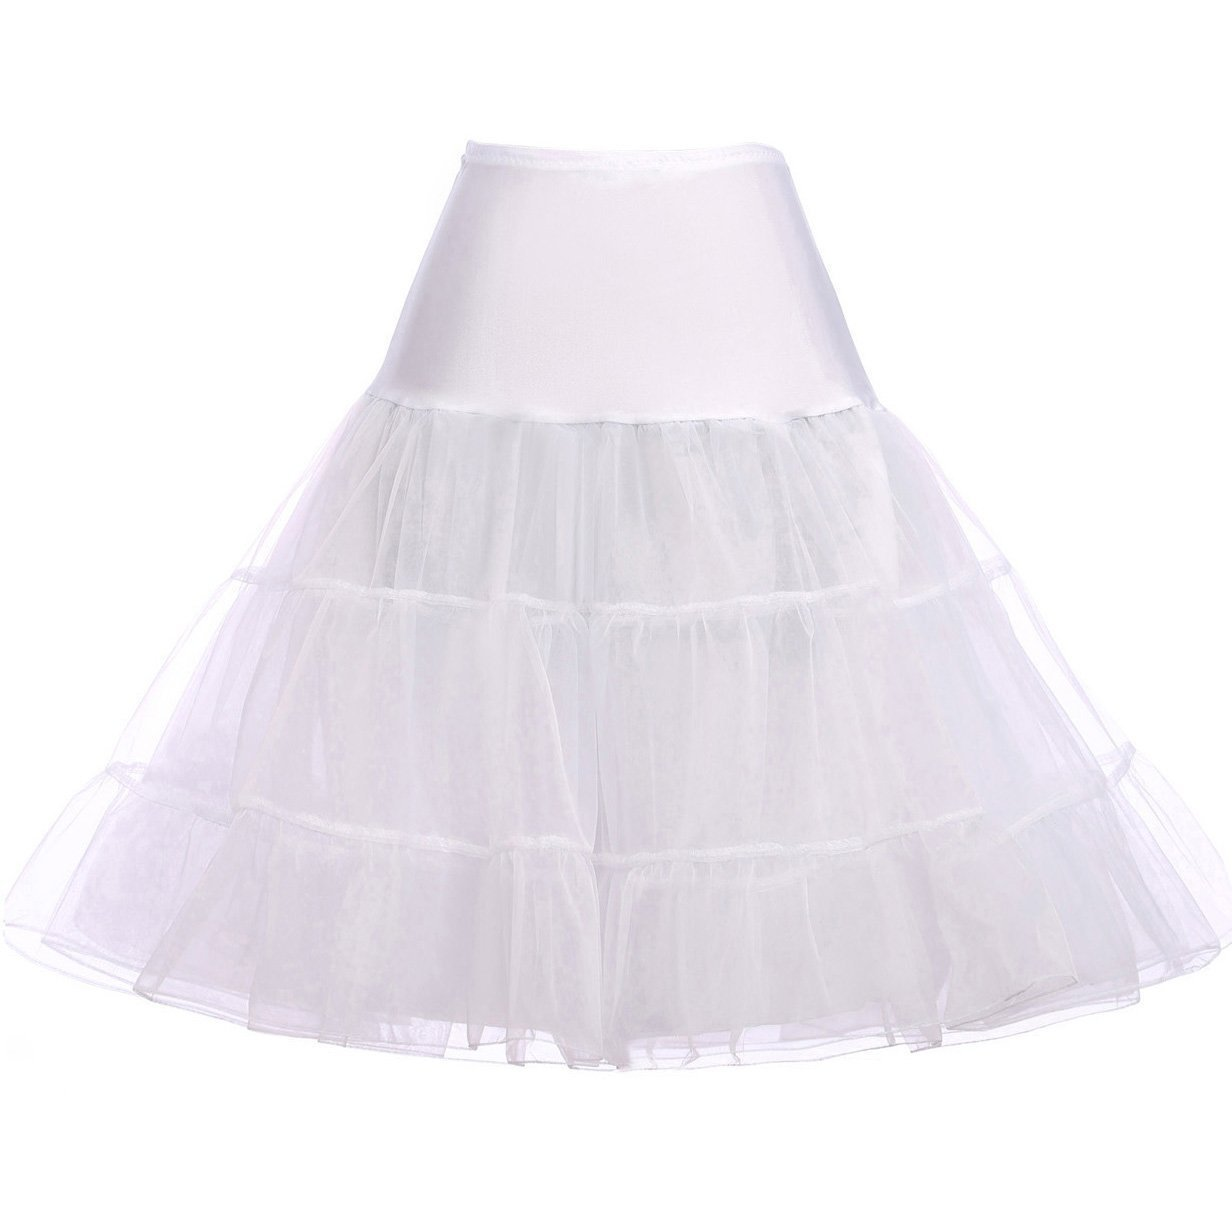 Paul Jones®Dress Women 50s Petticoat Skirts Tutu Crinoline Underskirt Plus Size